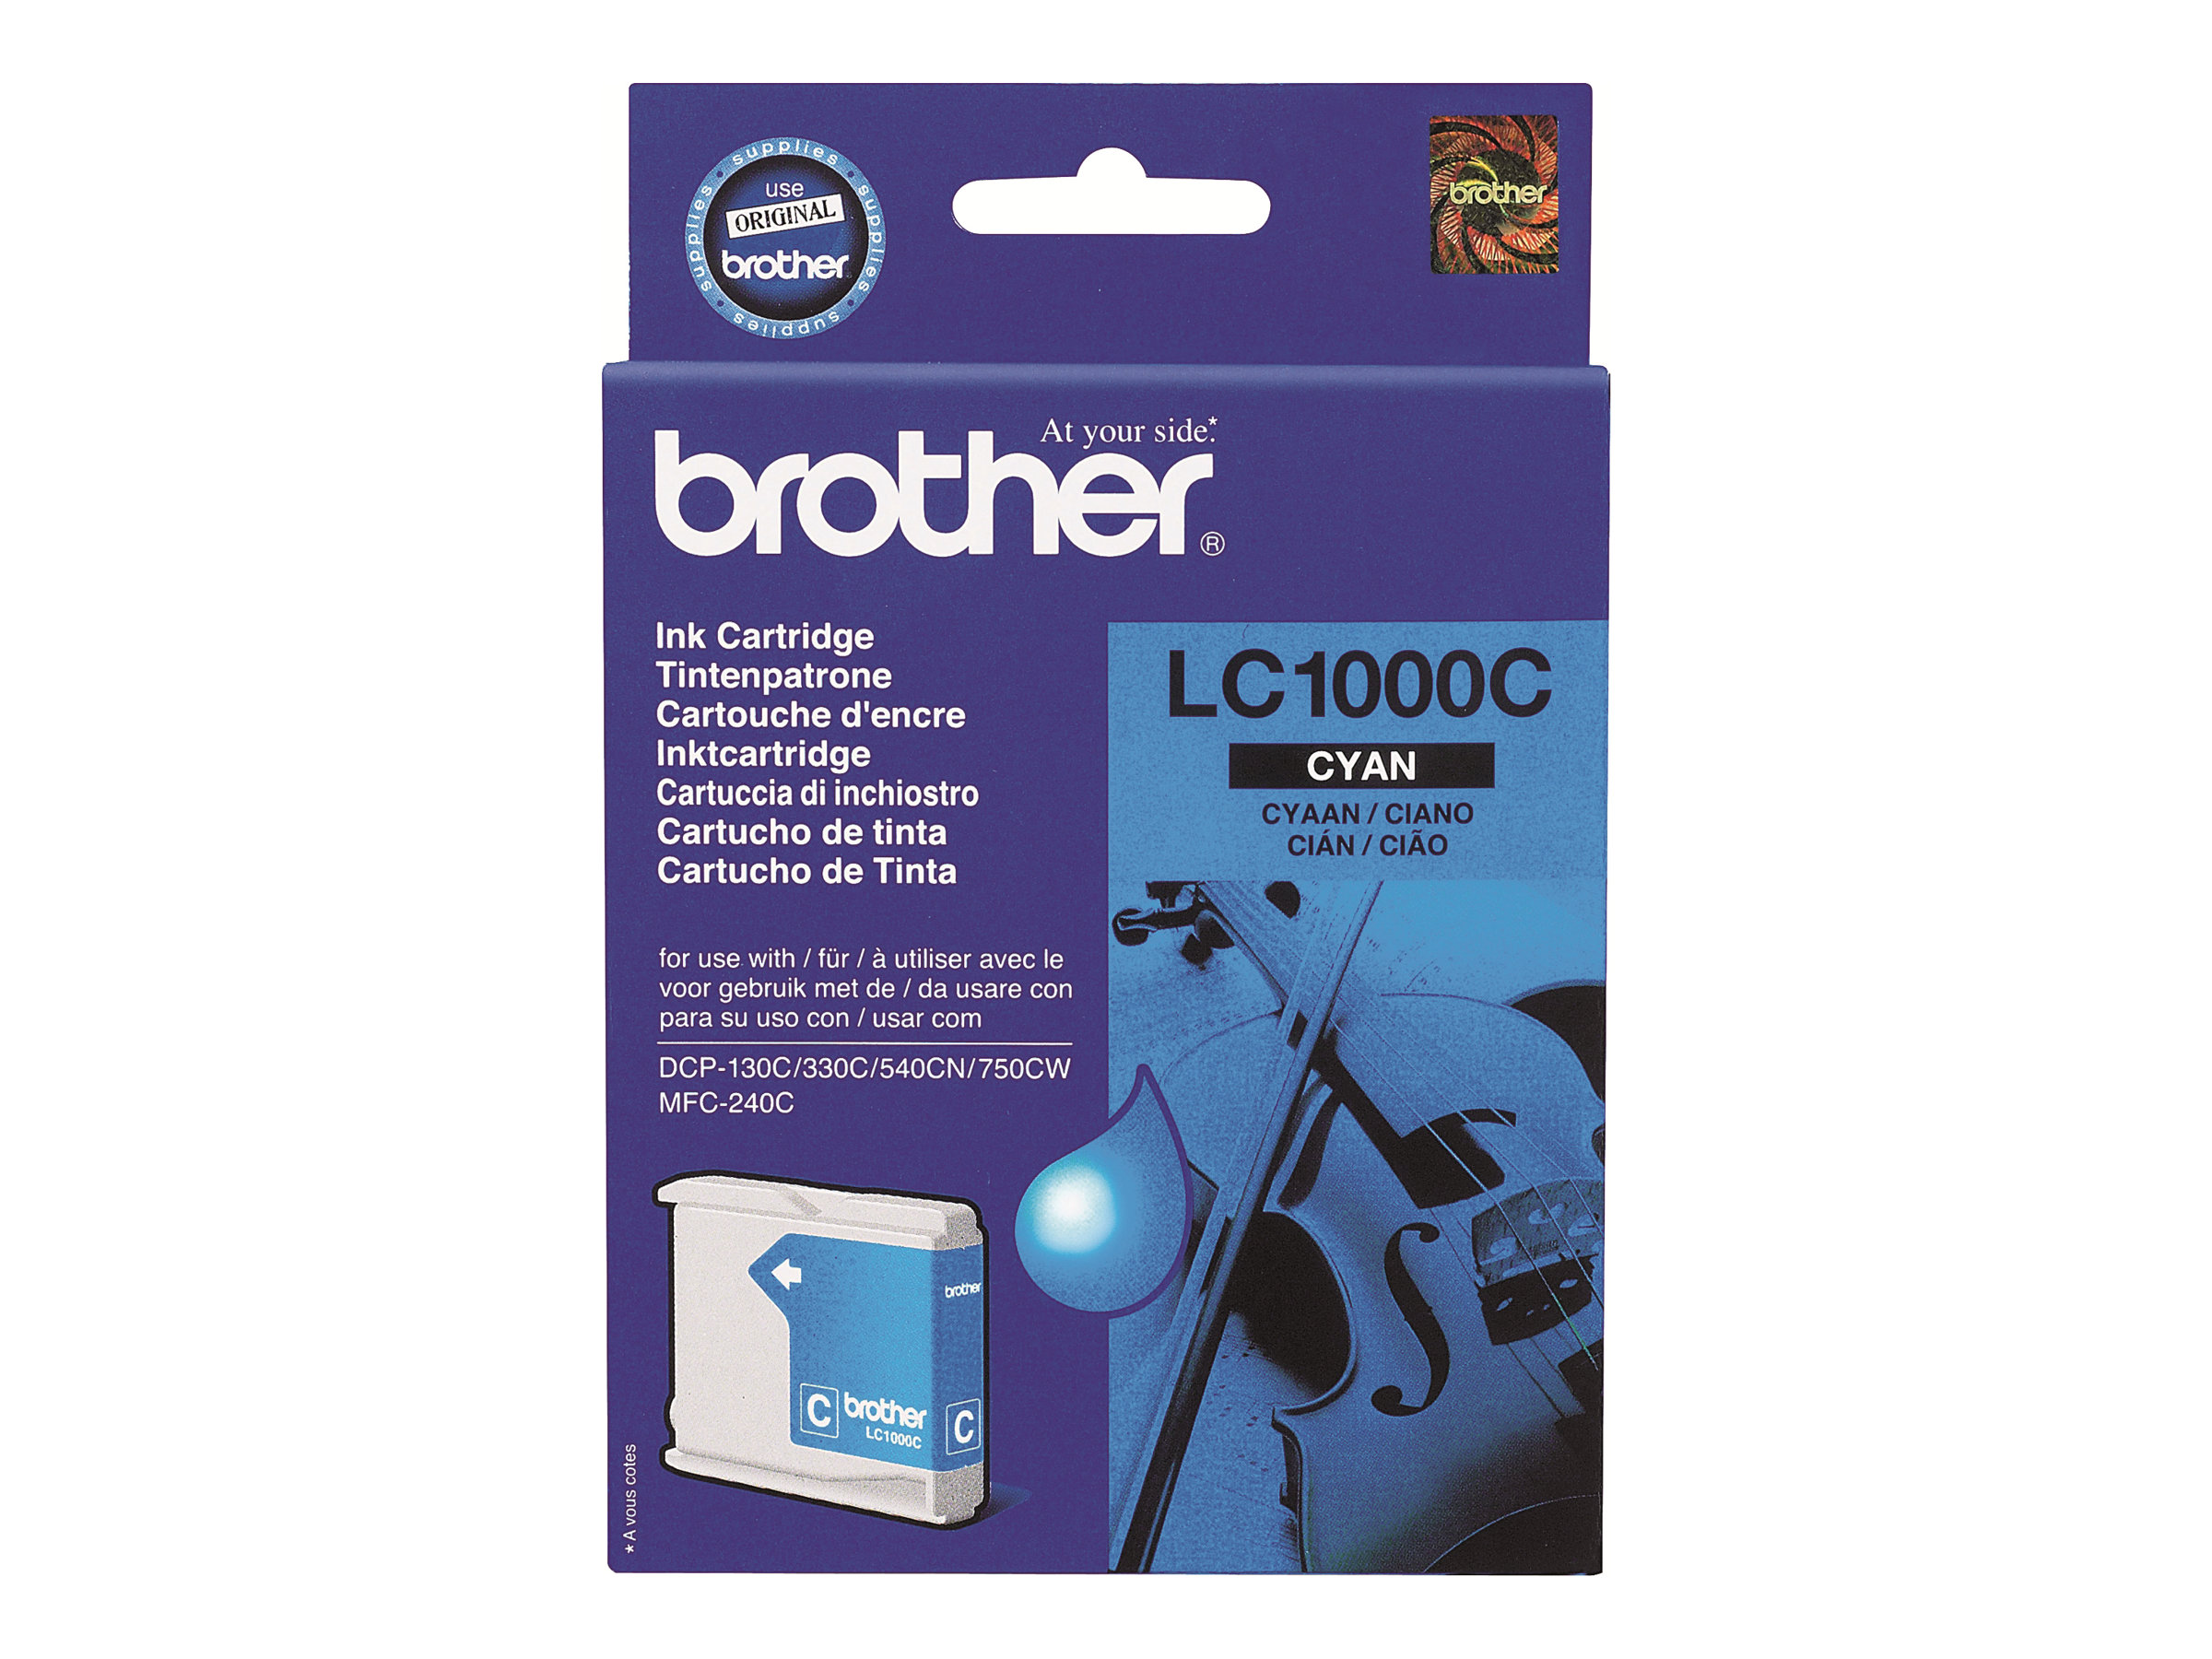 Brother LC1000C - Cyan - Original - Tintenpatrone - für Brother DCP-350, 353, 357, 560, 750, 770, MFC-3360, 465, 5460, 5860, 660, 680, 845, 885